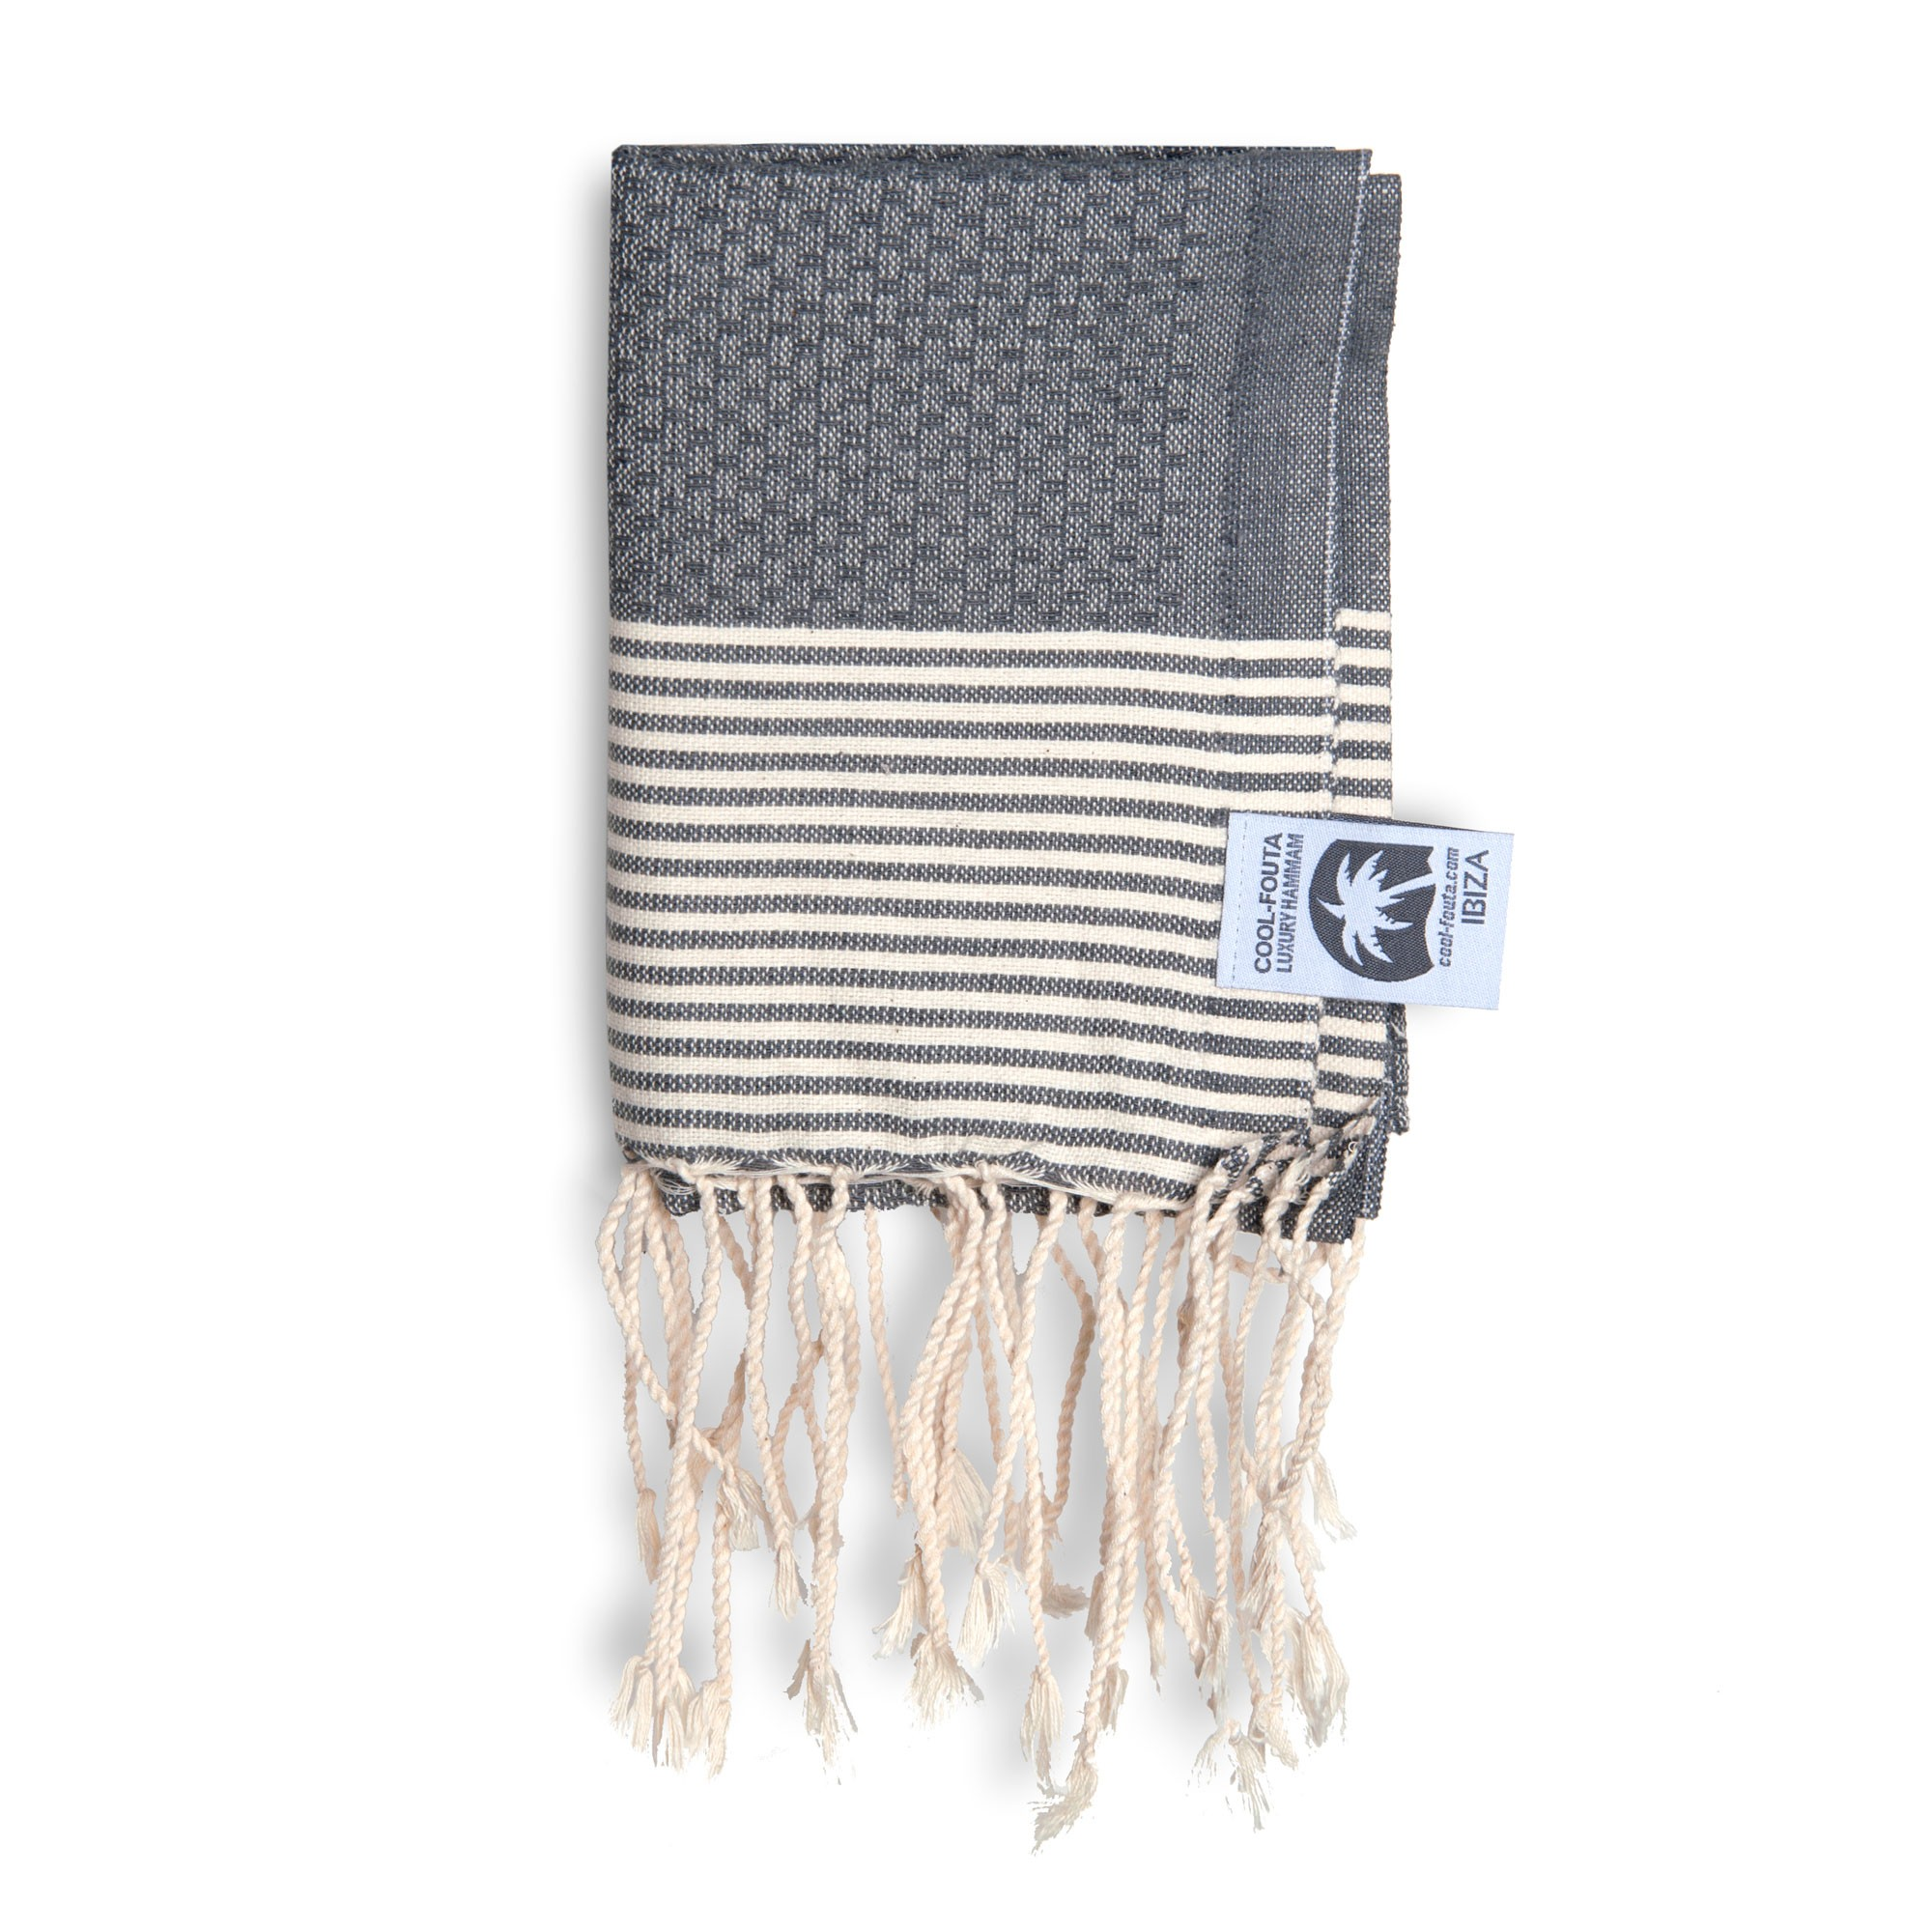 Fouta Call It.Cool Fouta Mini Monument Gray With Raw Cotton Stripes Honeycomb Fouta Towel